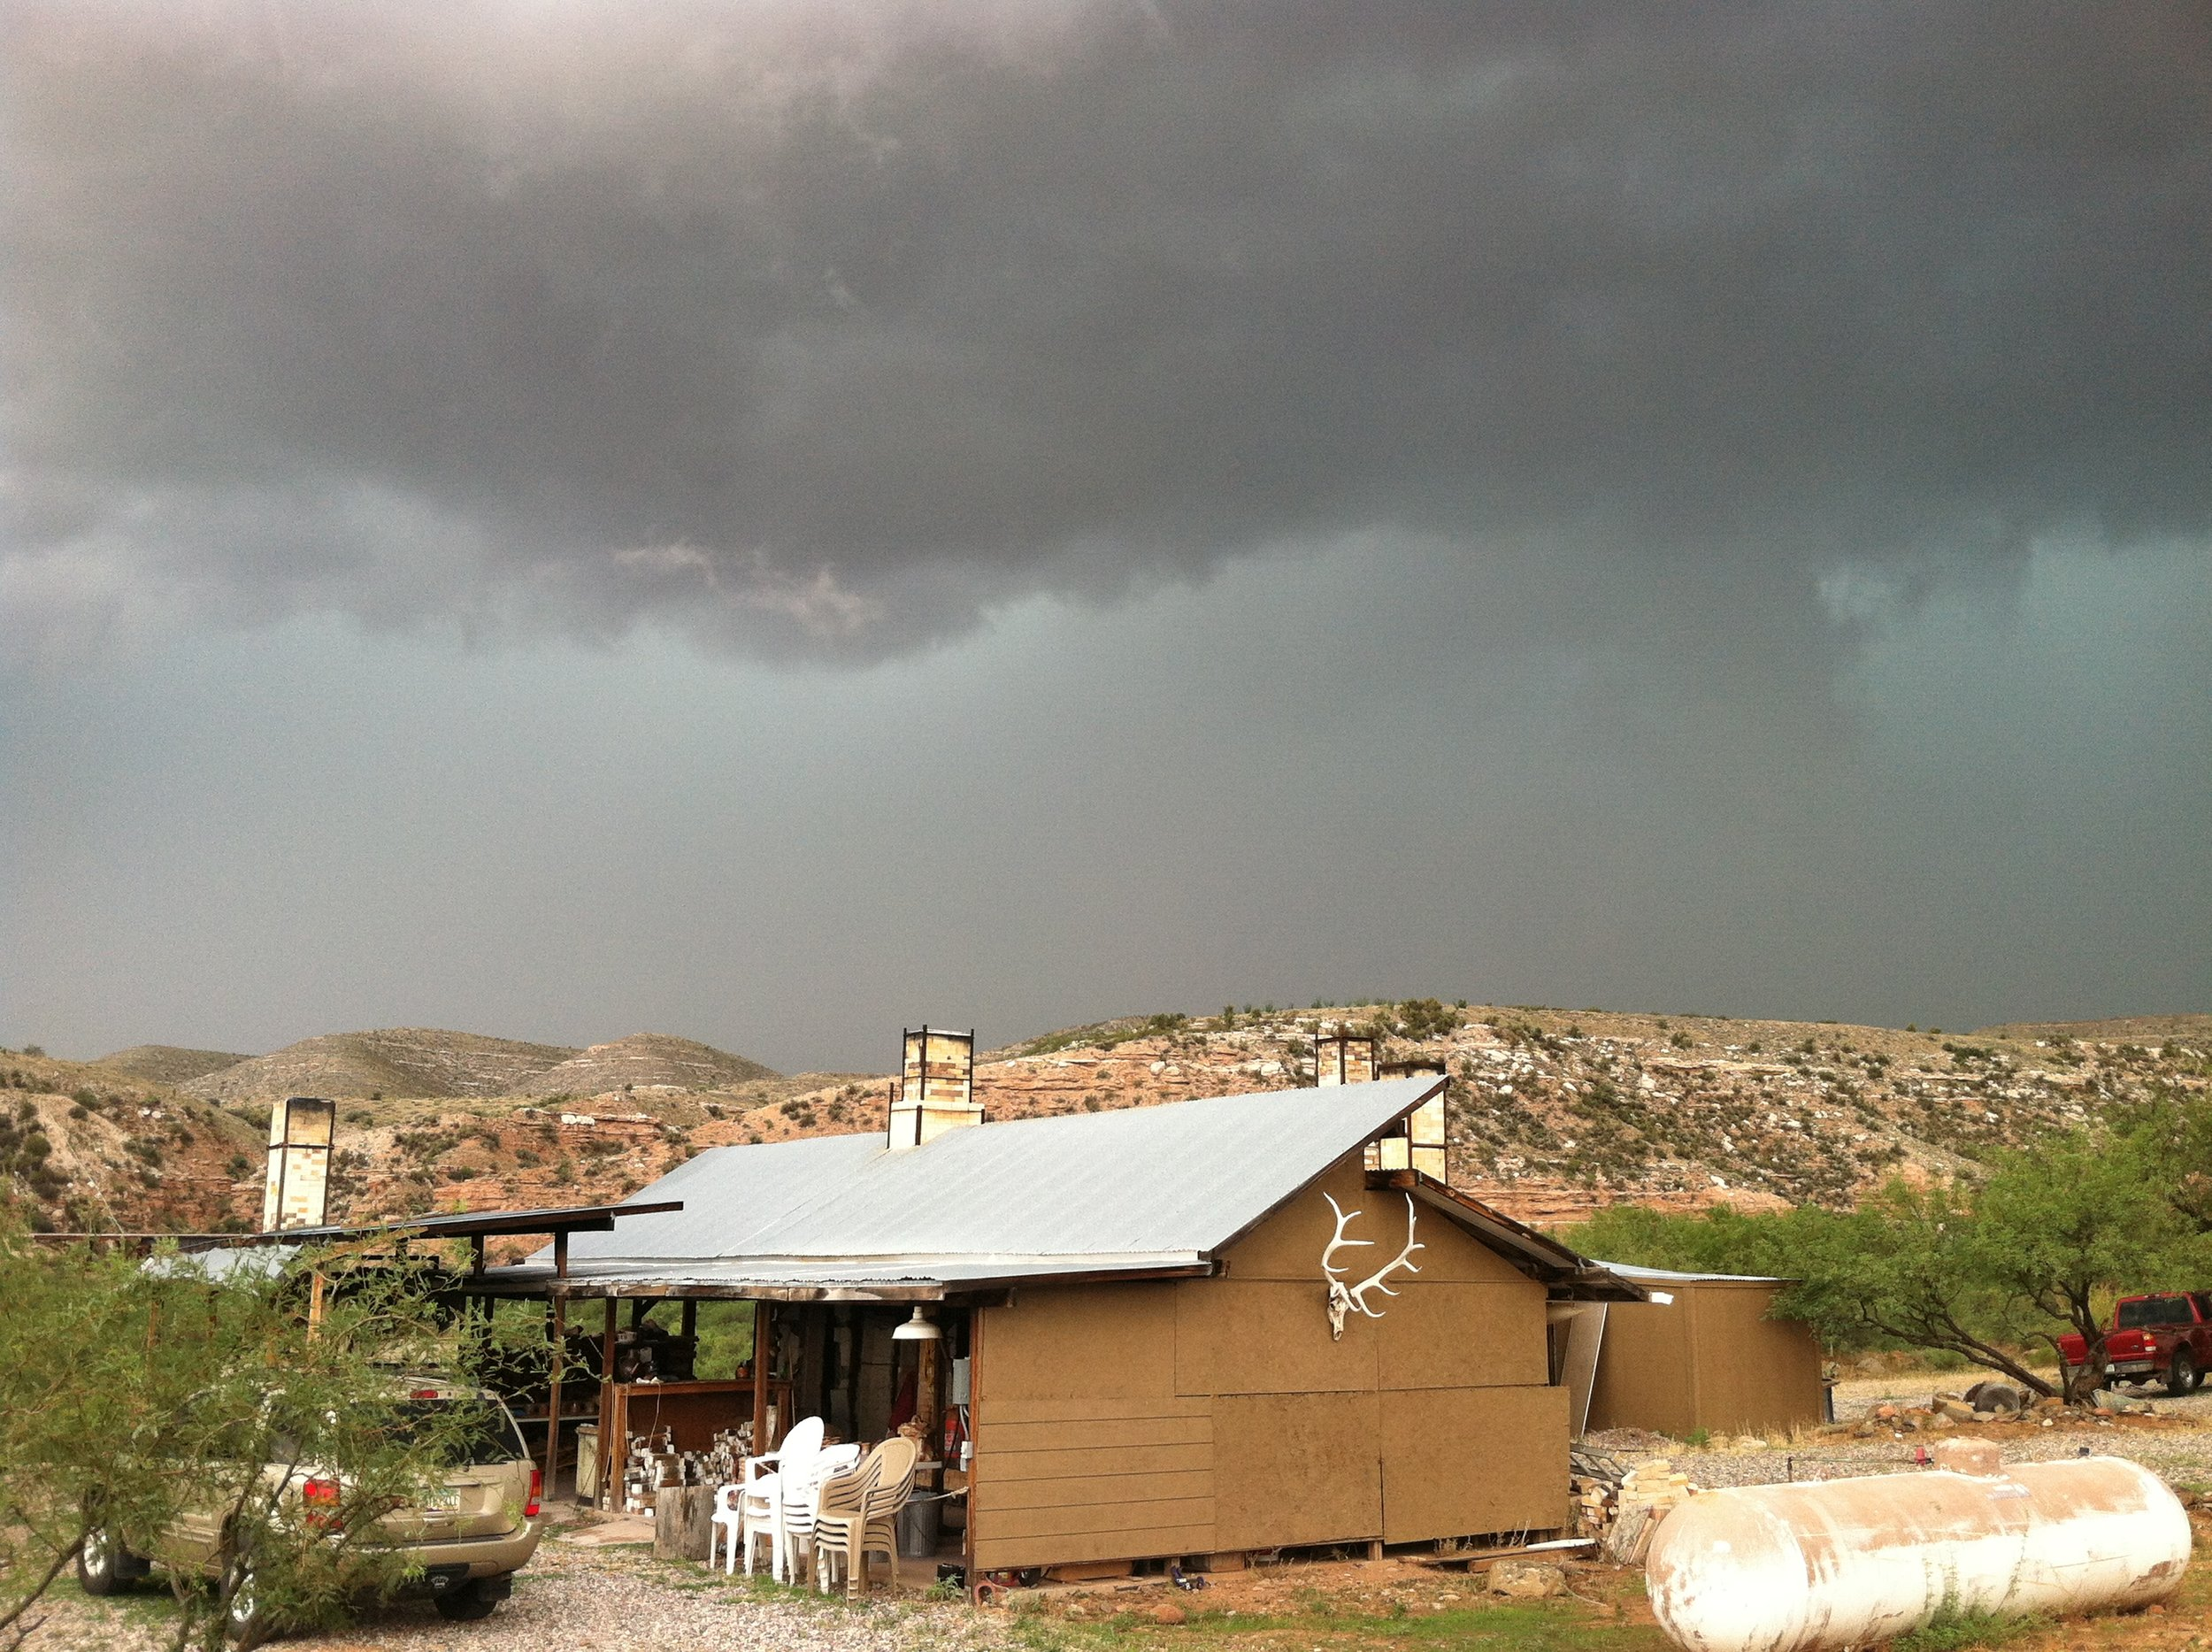 Monsoons on the horizon of the kiln-yard, July 2012